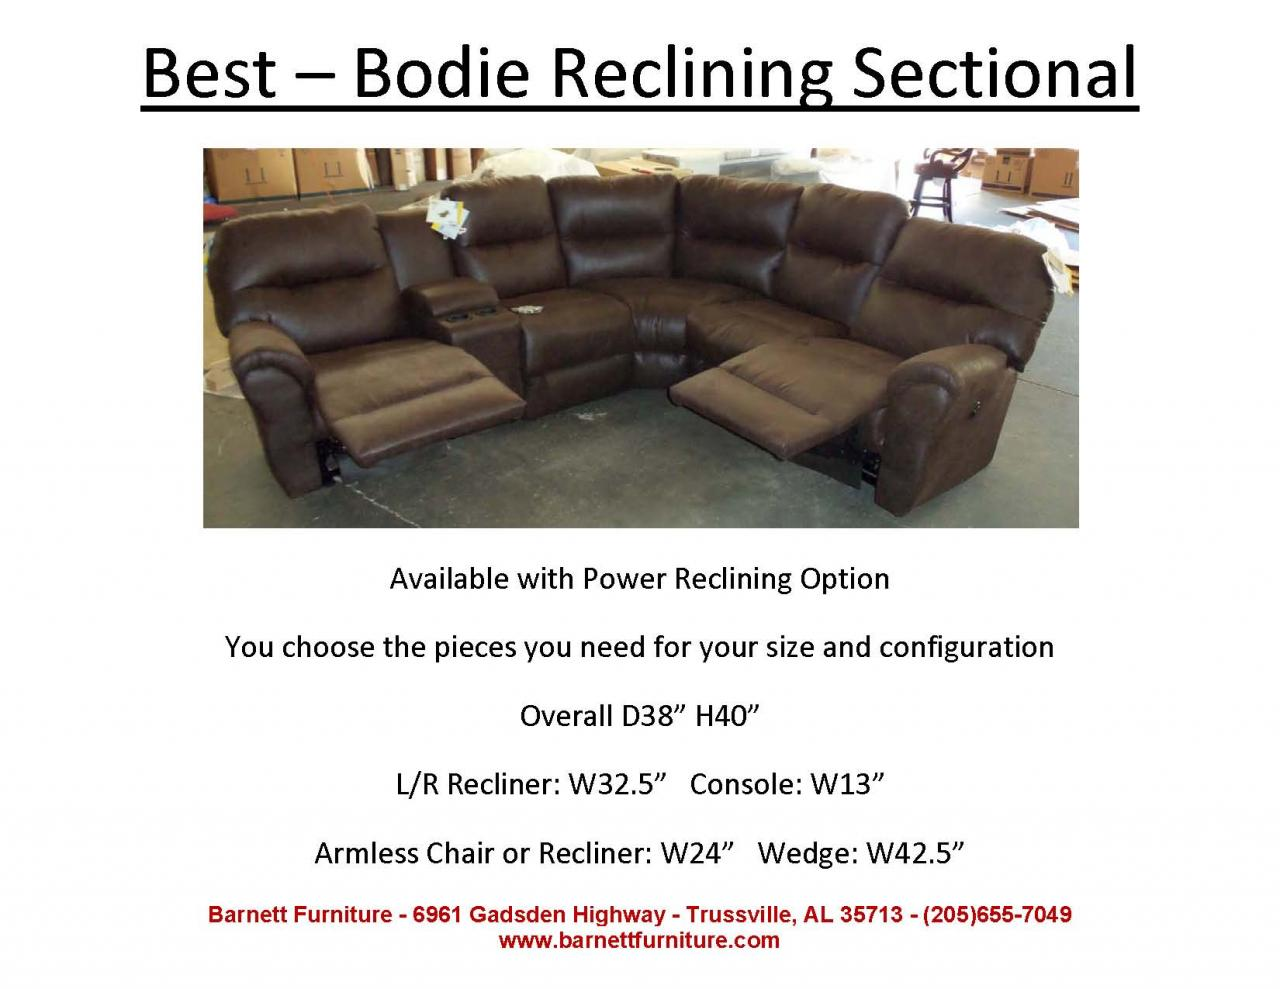 Best Bodie Reclining Sectional